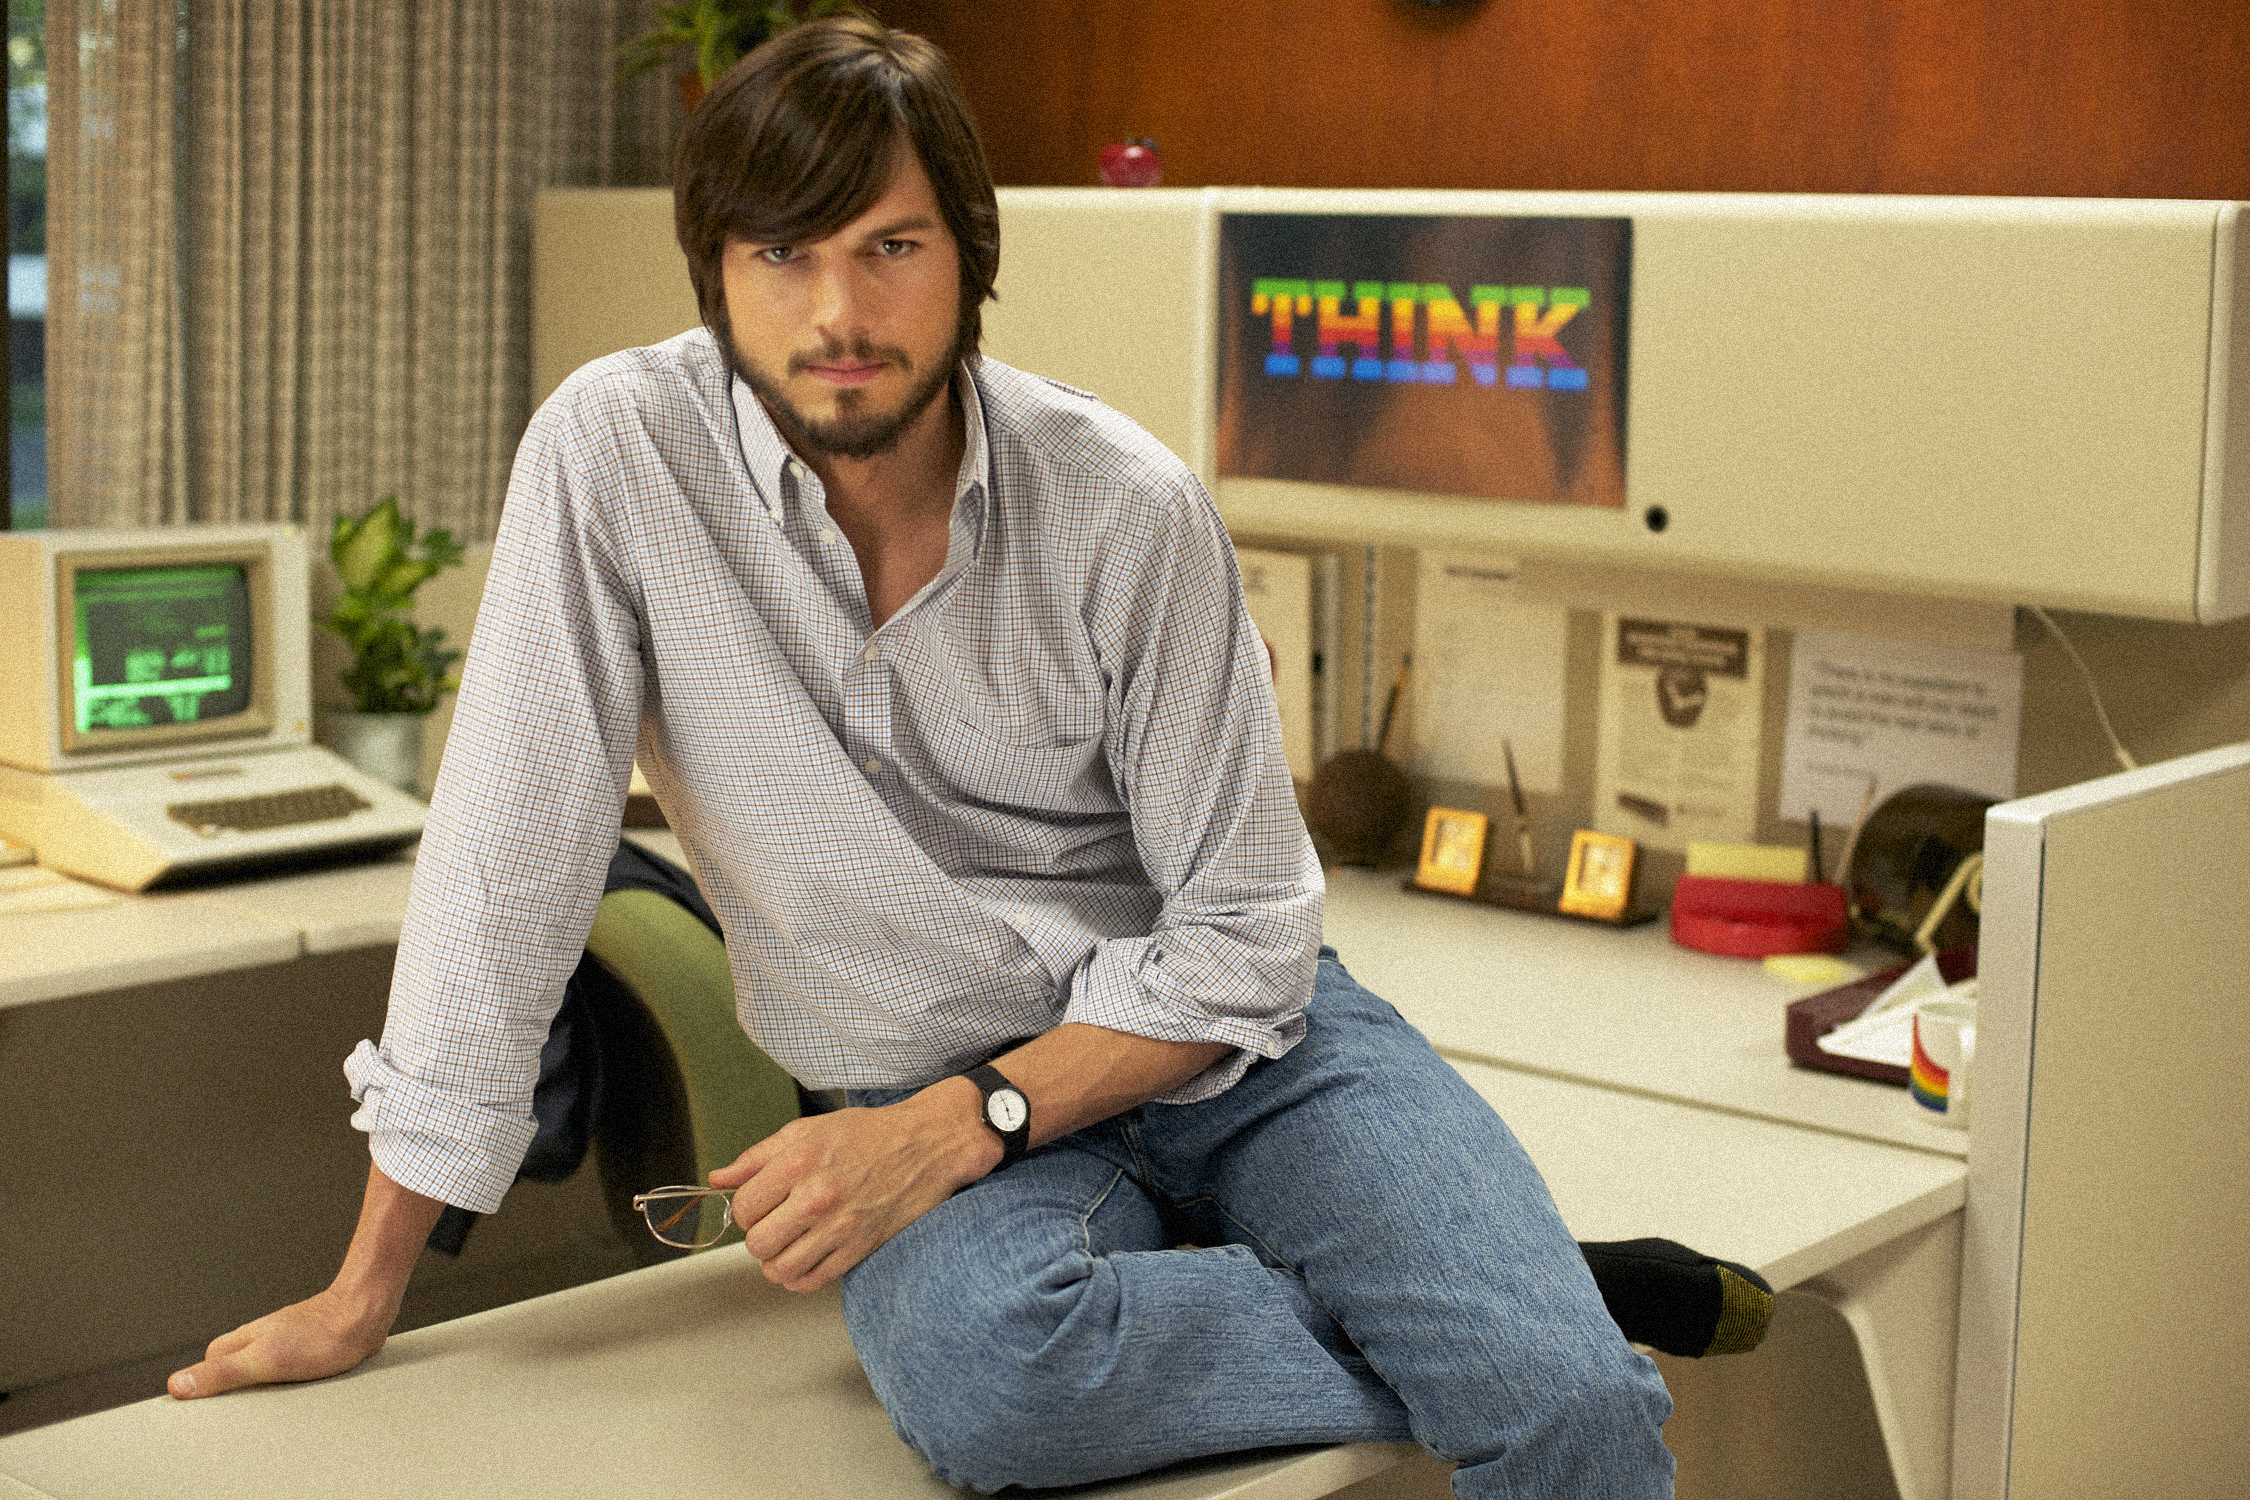 Jobs-Official Poster First Promo Photo-04Dezembro2012